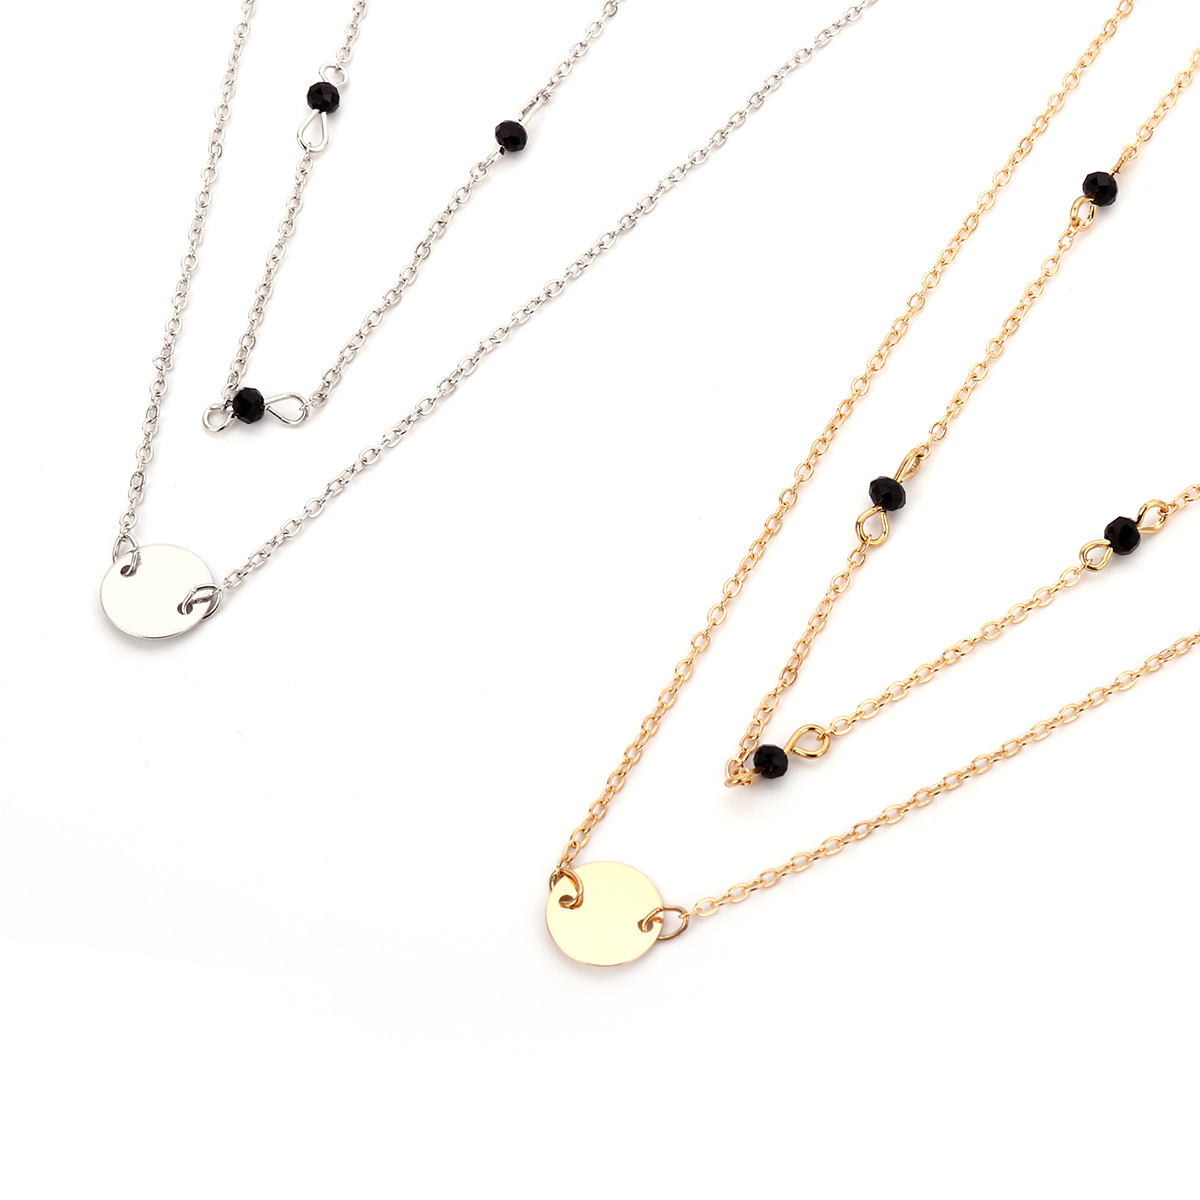 Fashion Alloy plating necklace Geometric (Gold 1634)NHXR1648-Gold 1634